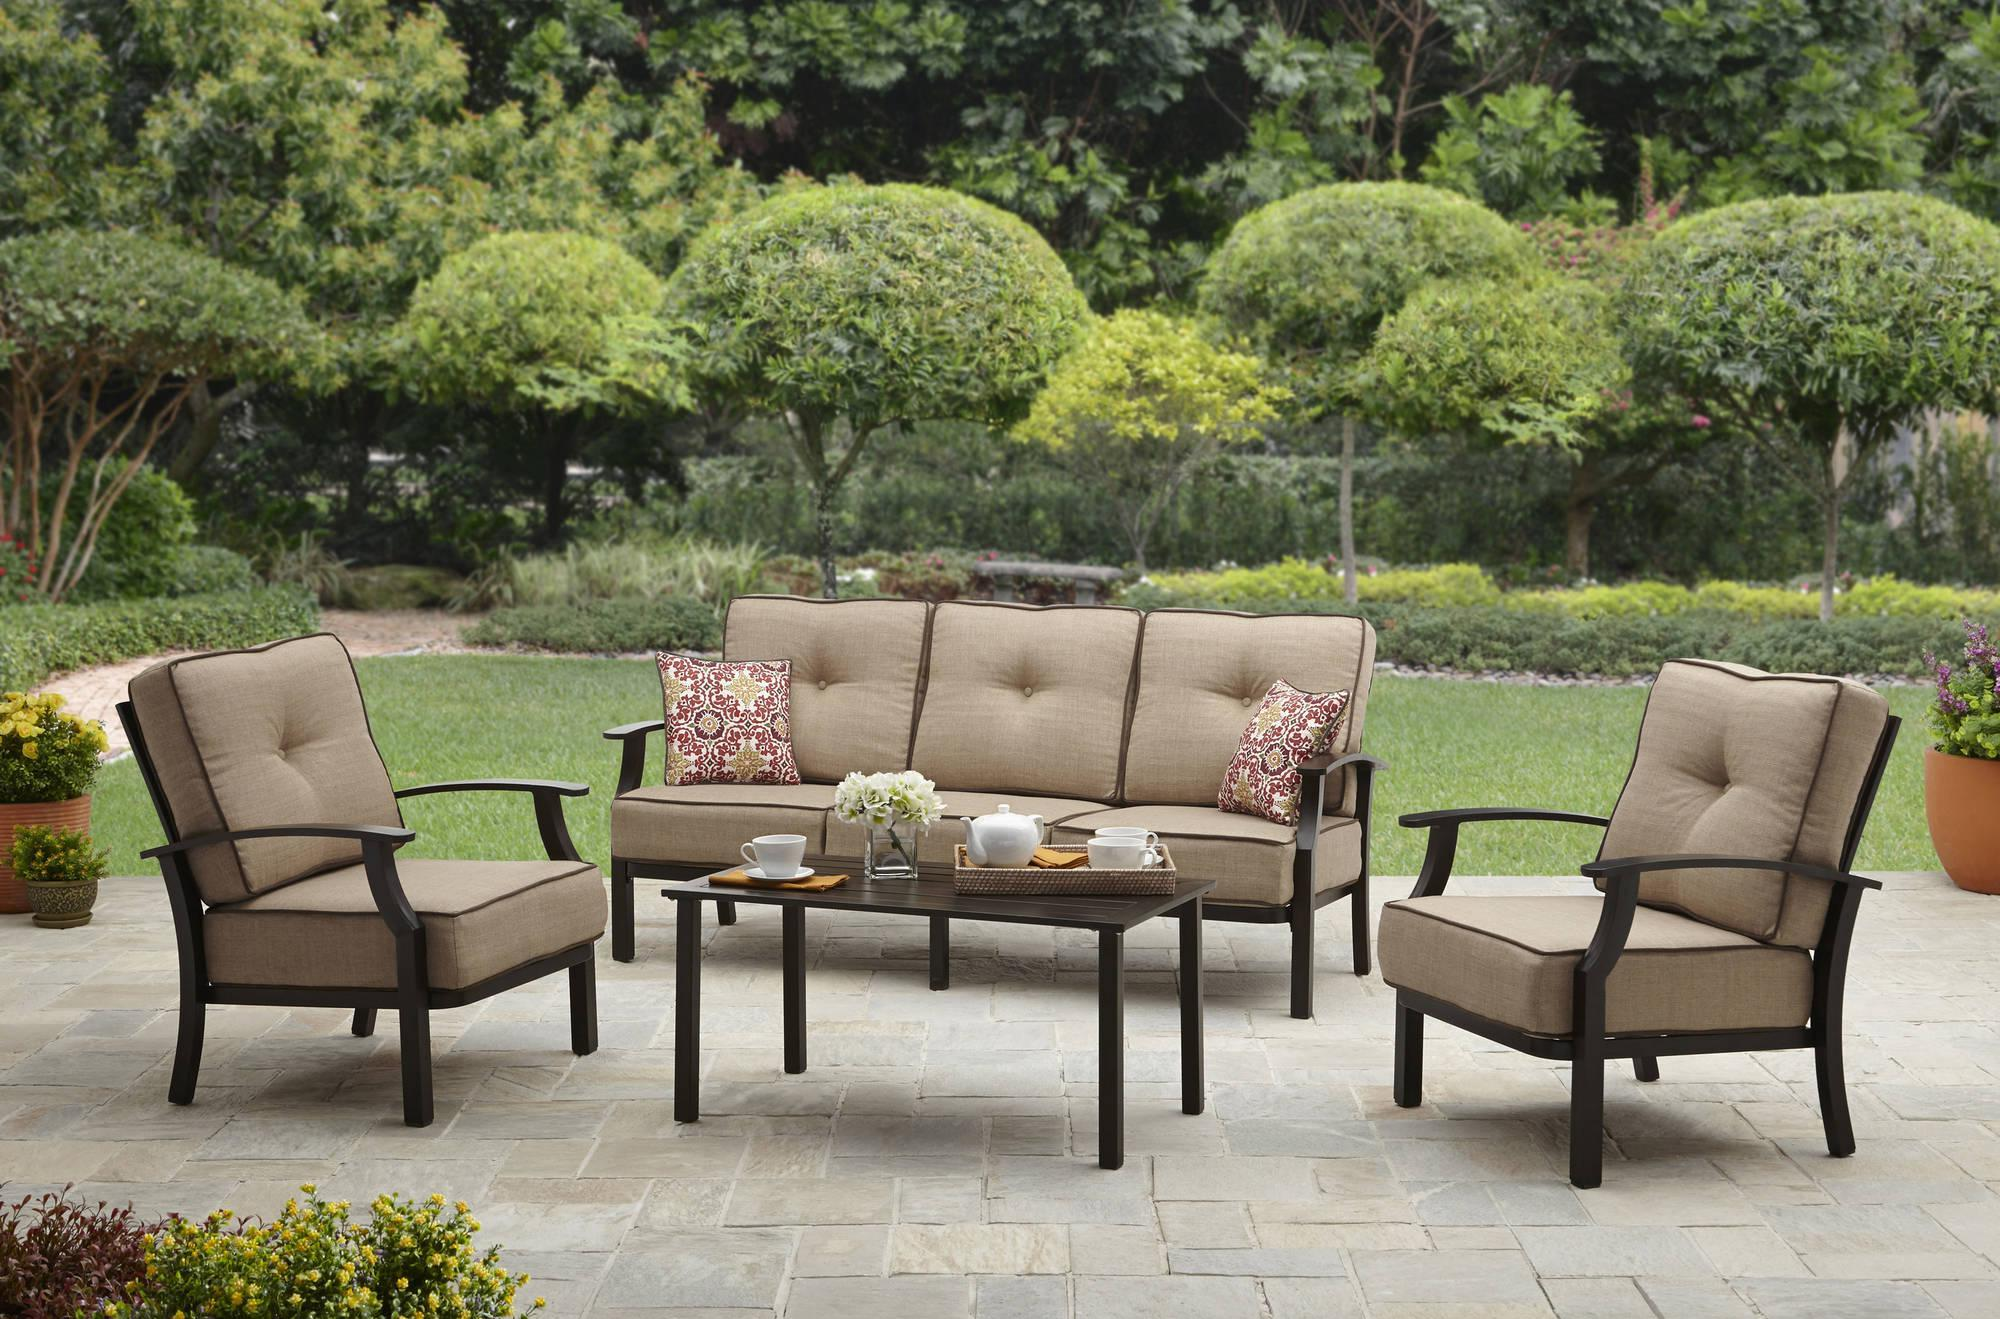 art van sofas whittemore sherrill leather sofa outdoor furniture for perfect patio furnitures